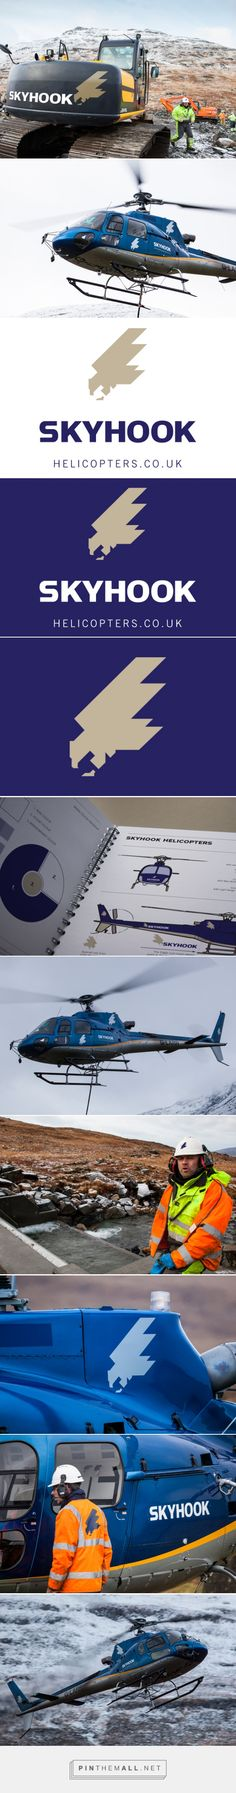 Brand & logo design by my:creative - SkyHook Helicopters is a new business based in North Argyll on the West Coast of Scotland. As the name suggests the principal activity is the lifting of large loads to inaccessible places, like mountain sides and off shore areas. SkyHook have become essential in facilitating new rural ventures like hydro power schemes. SKYHOOK © www.thisismycreative.com - created on 2016-01-26 16:37:25